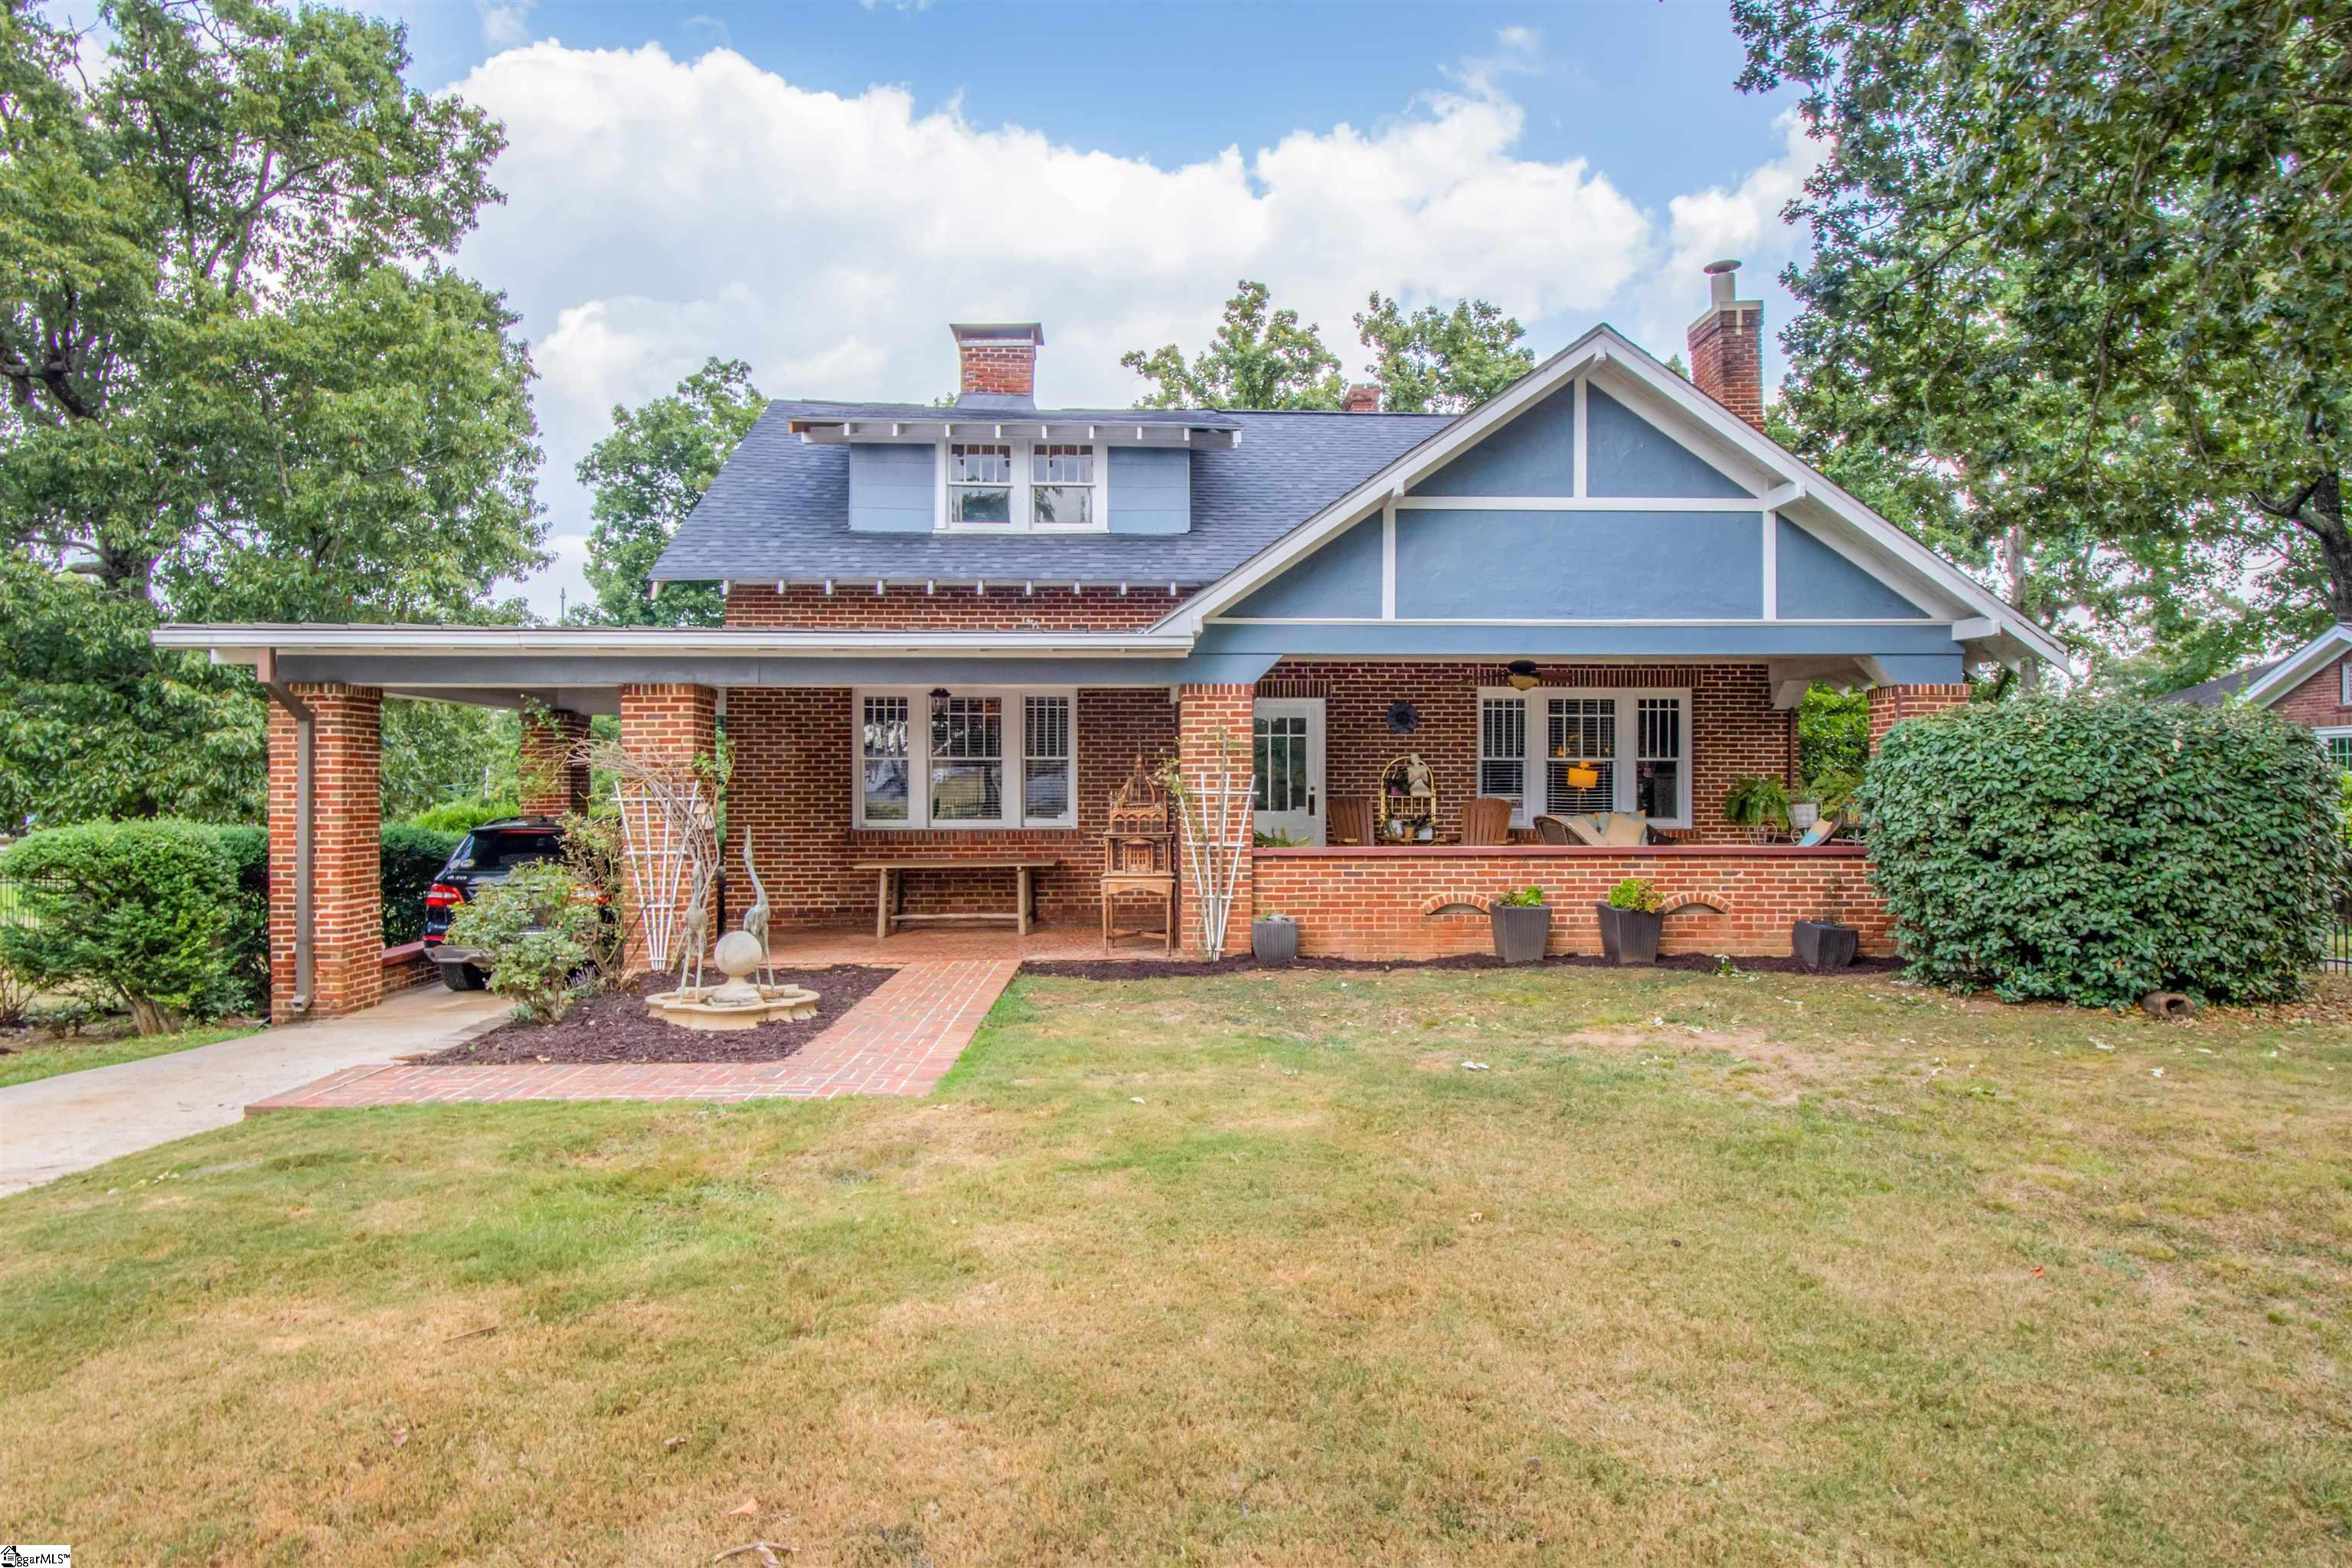 4810 Old Buncombe, Greenville, SC 29617